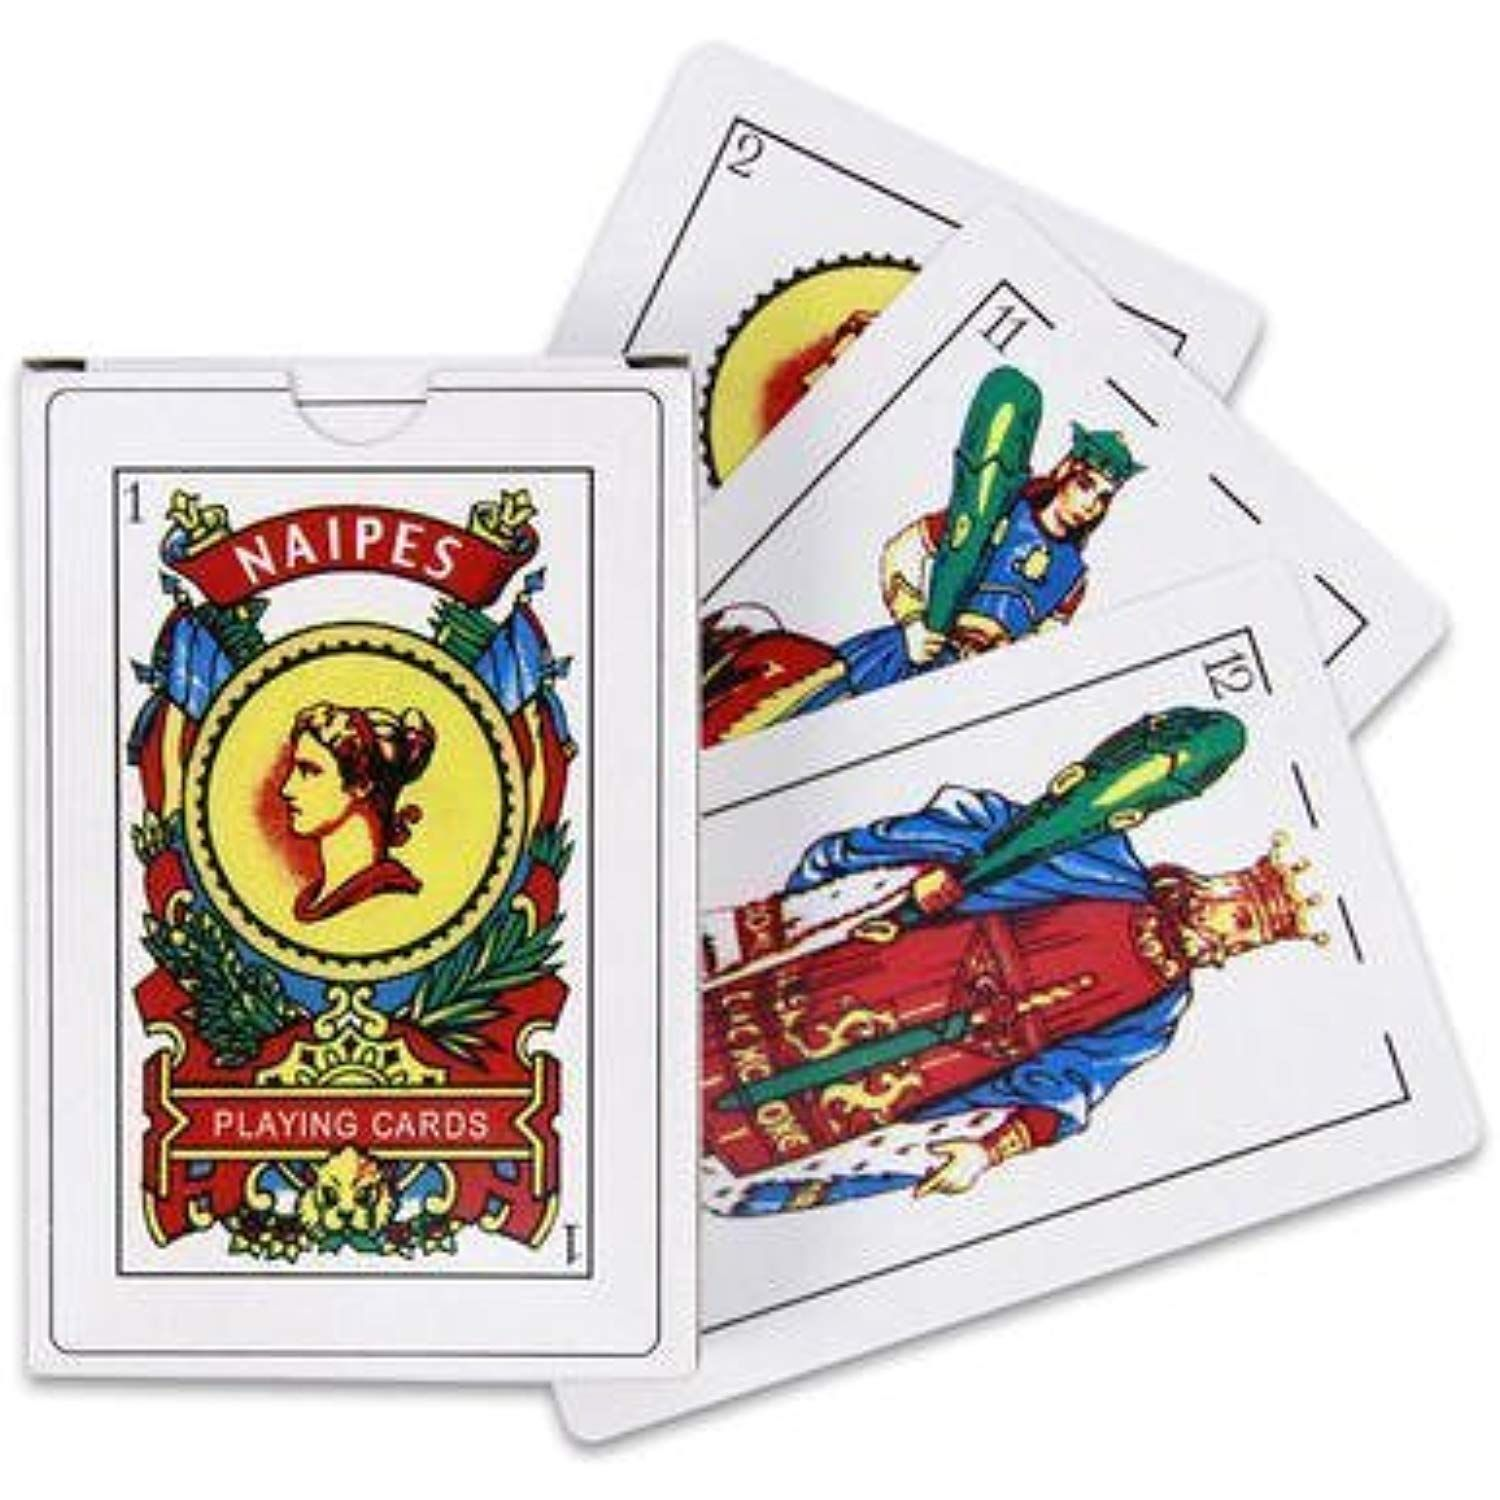 Naipes spanish playing cards you can get more details